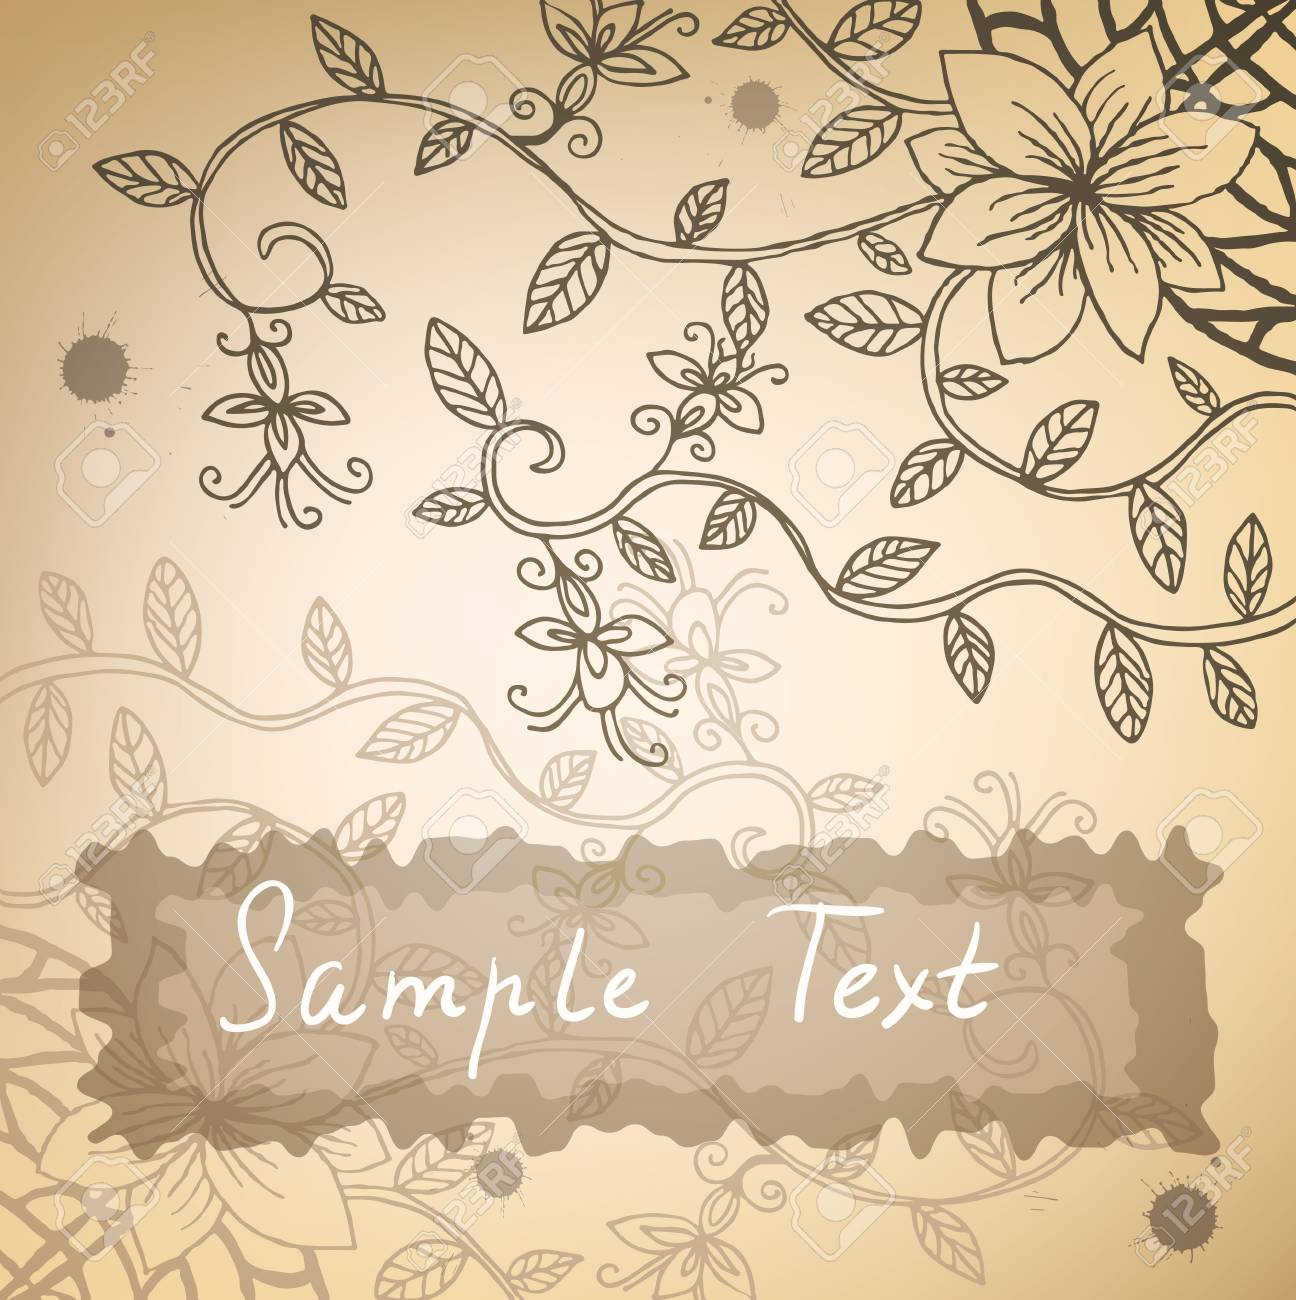 Vintage stylized floral background with ink stains and place for your text. Stock Vector - 16710504